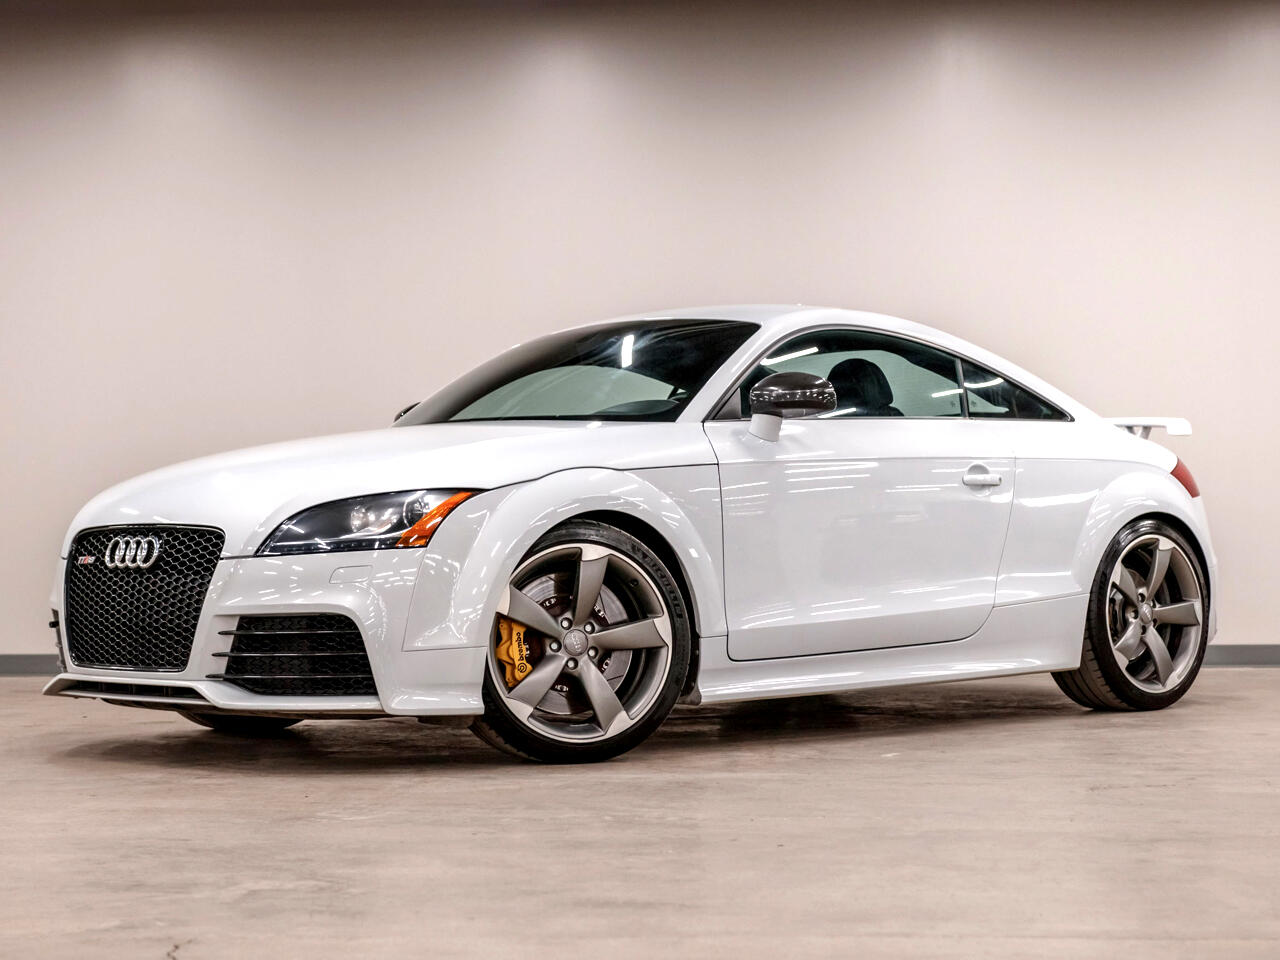 2012 Audi TT RS 2.5 Coupe quattro